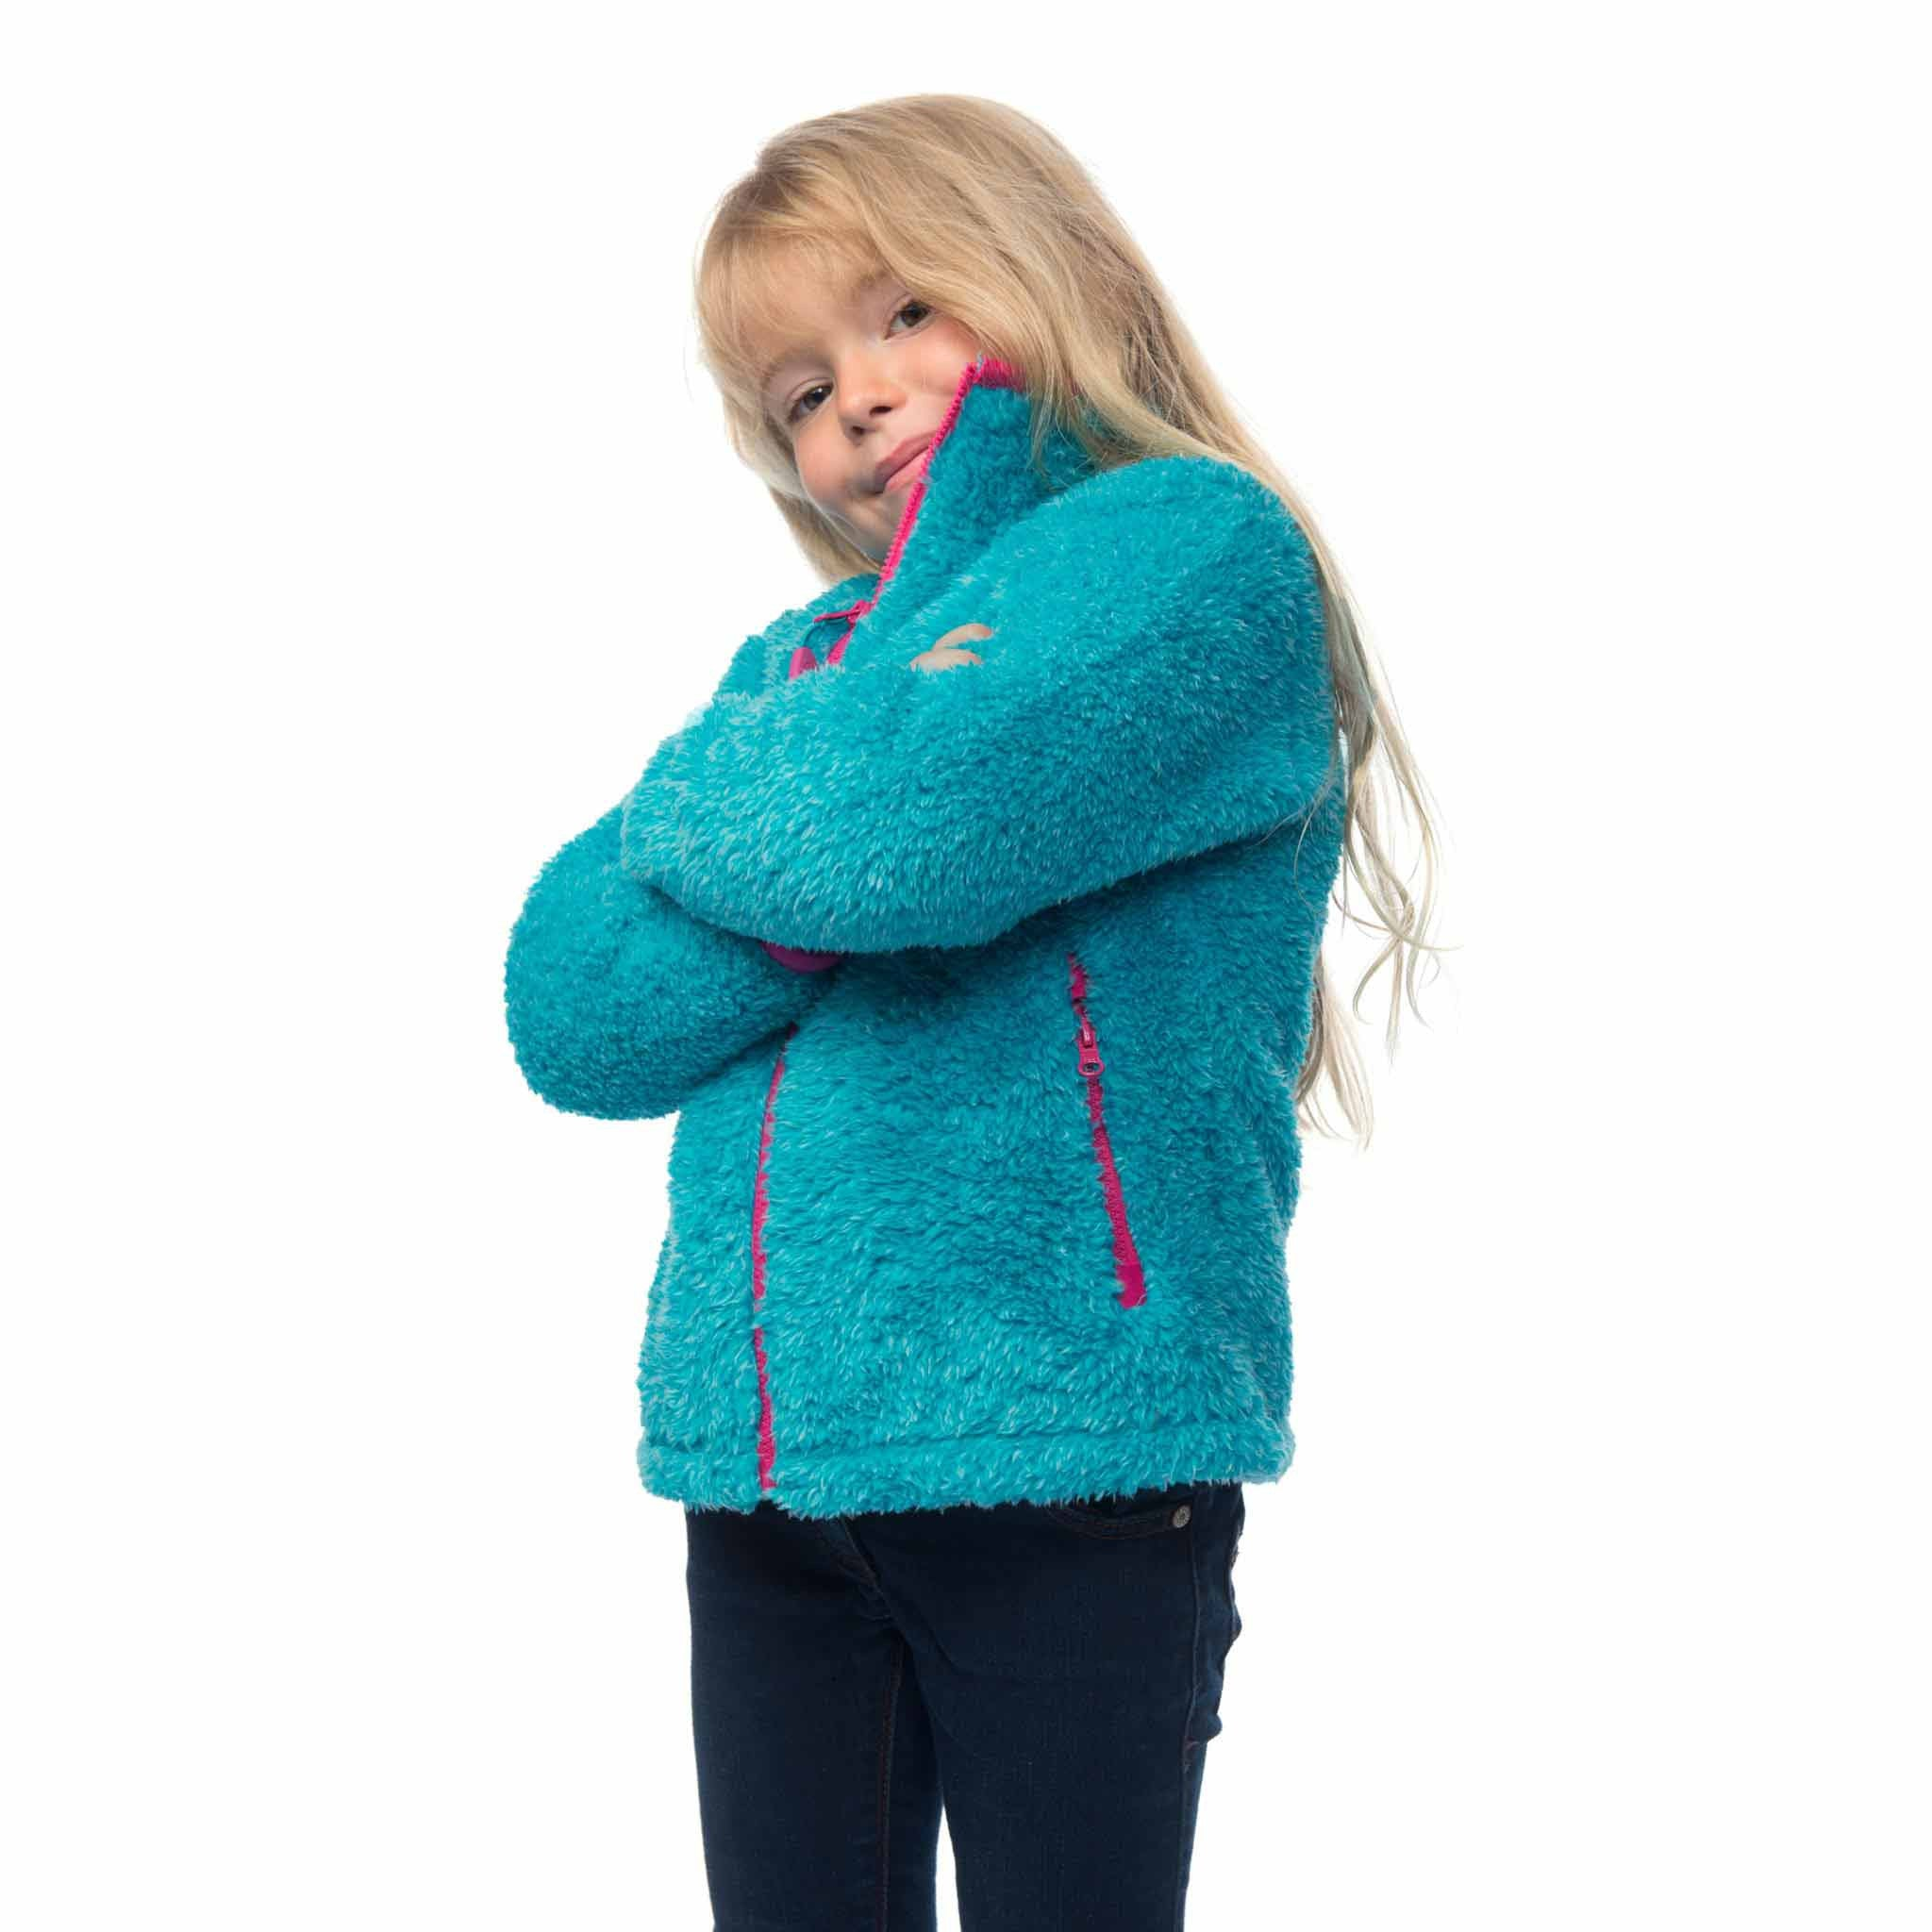 Lighthouse Girls' Lottie Full Zip Sherpa Fleece in Turqoise Blue. Fully zipped.